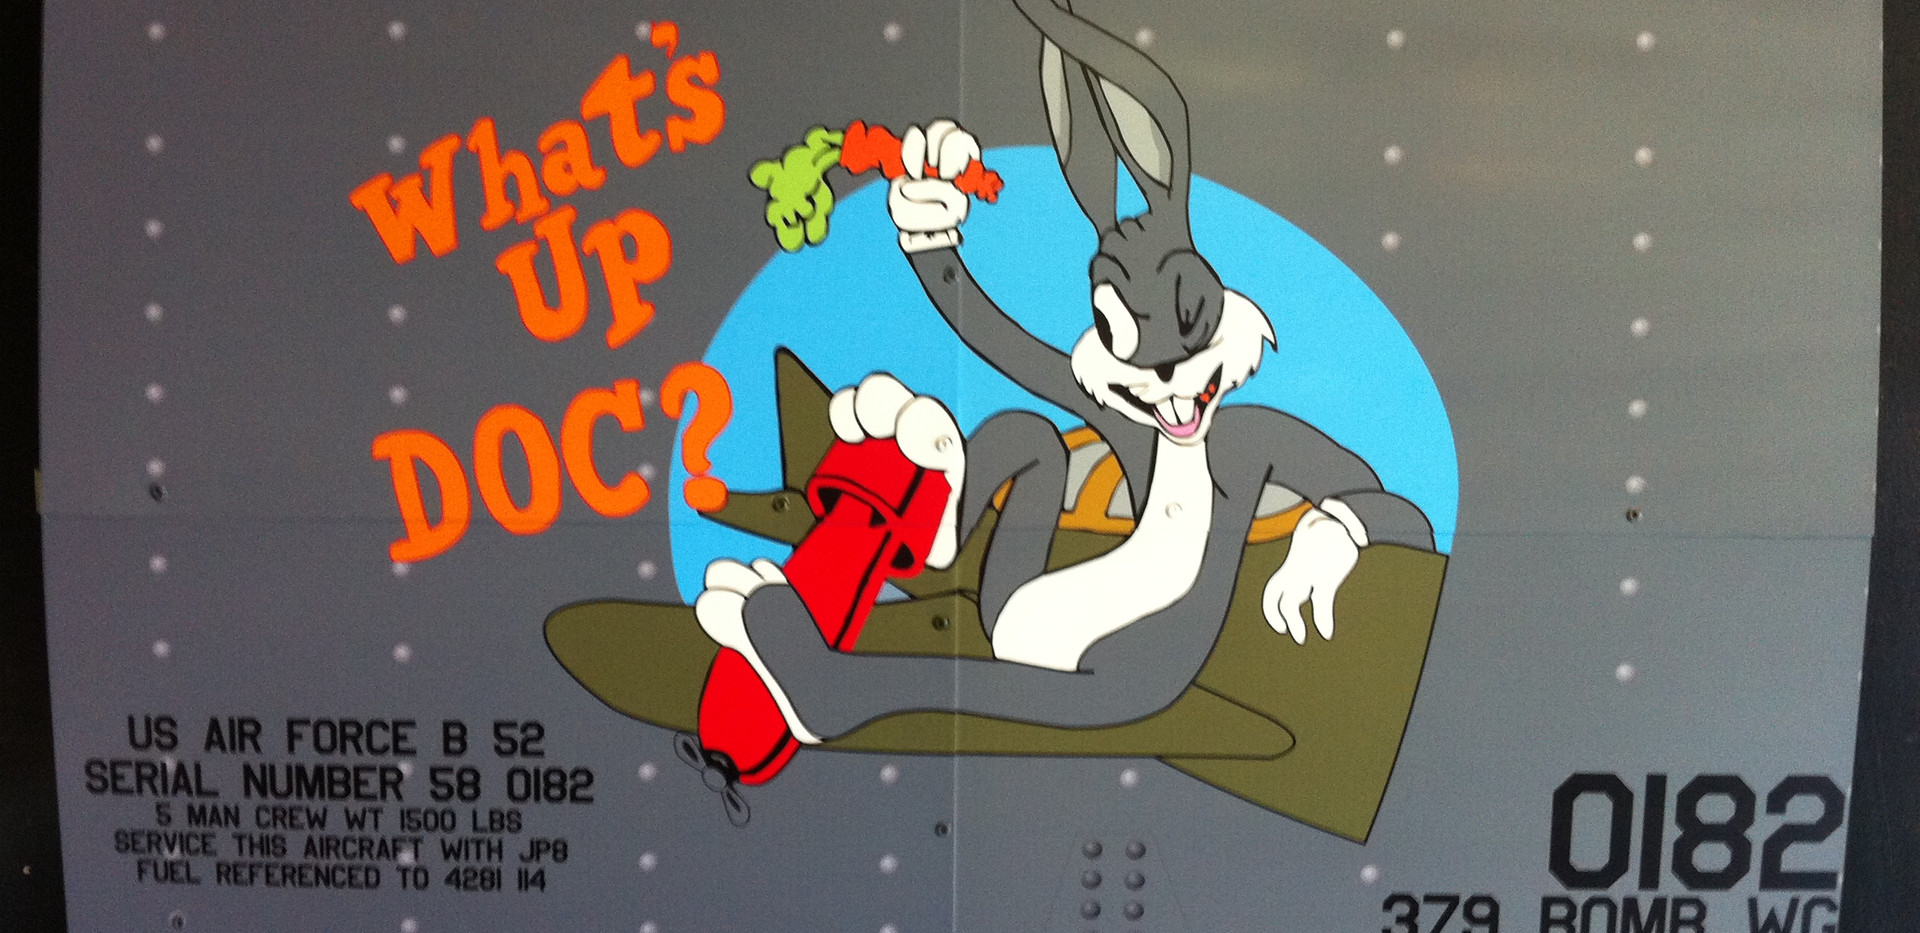 B-52 What's Up Doc?